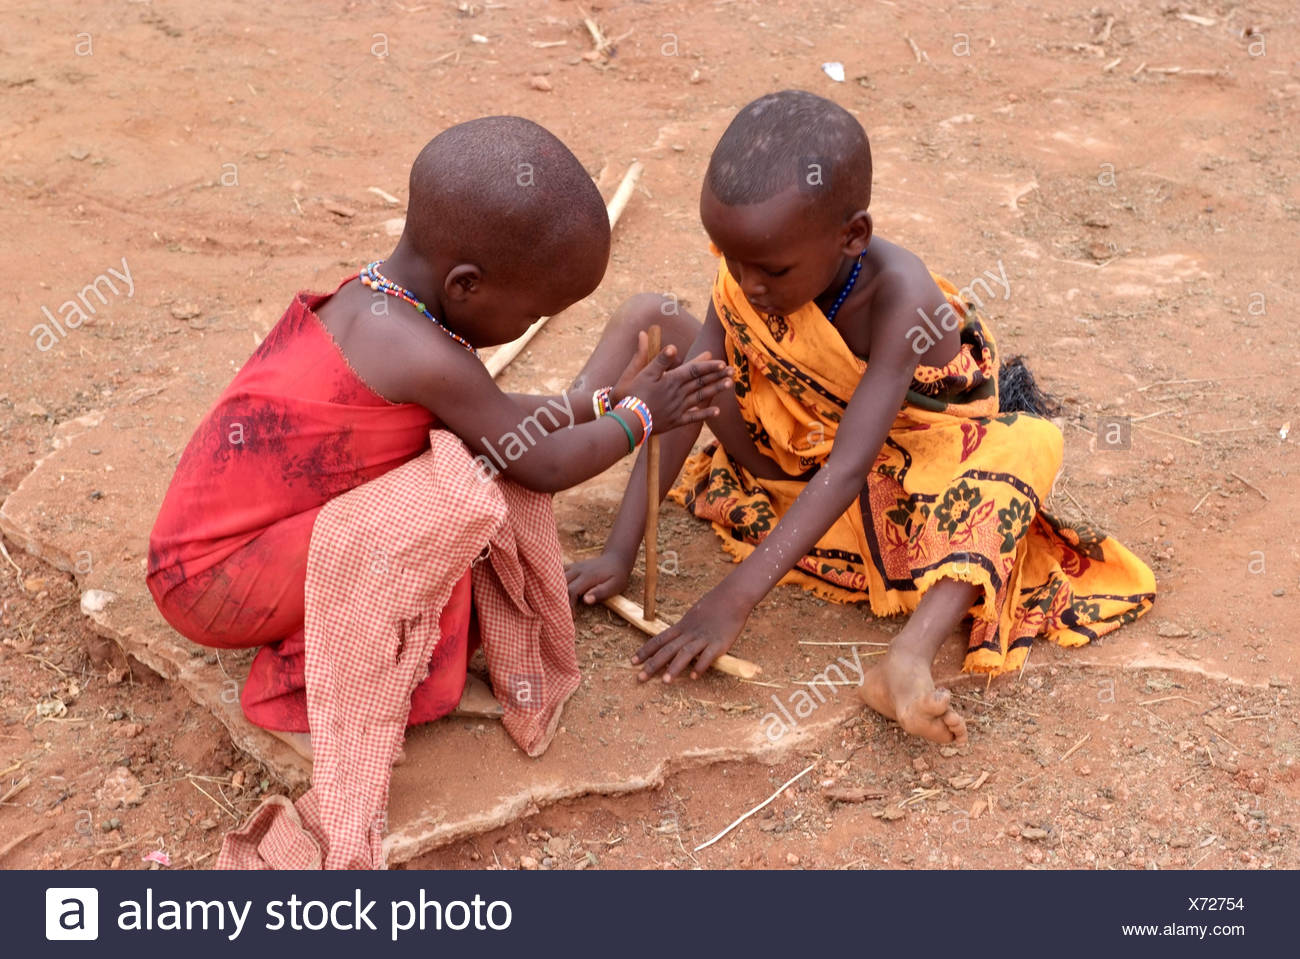 Massai children are pretending to ignite a fire, Kenya, Africa - Stock Image